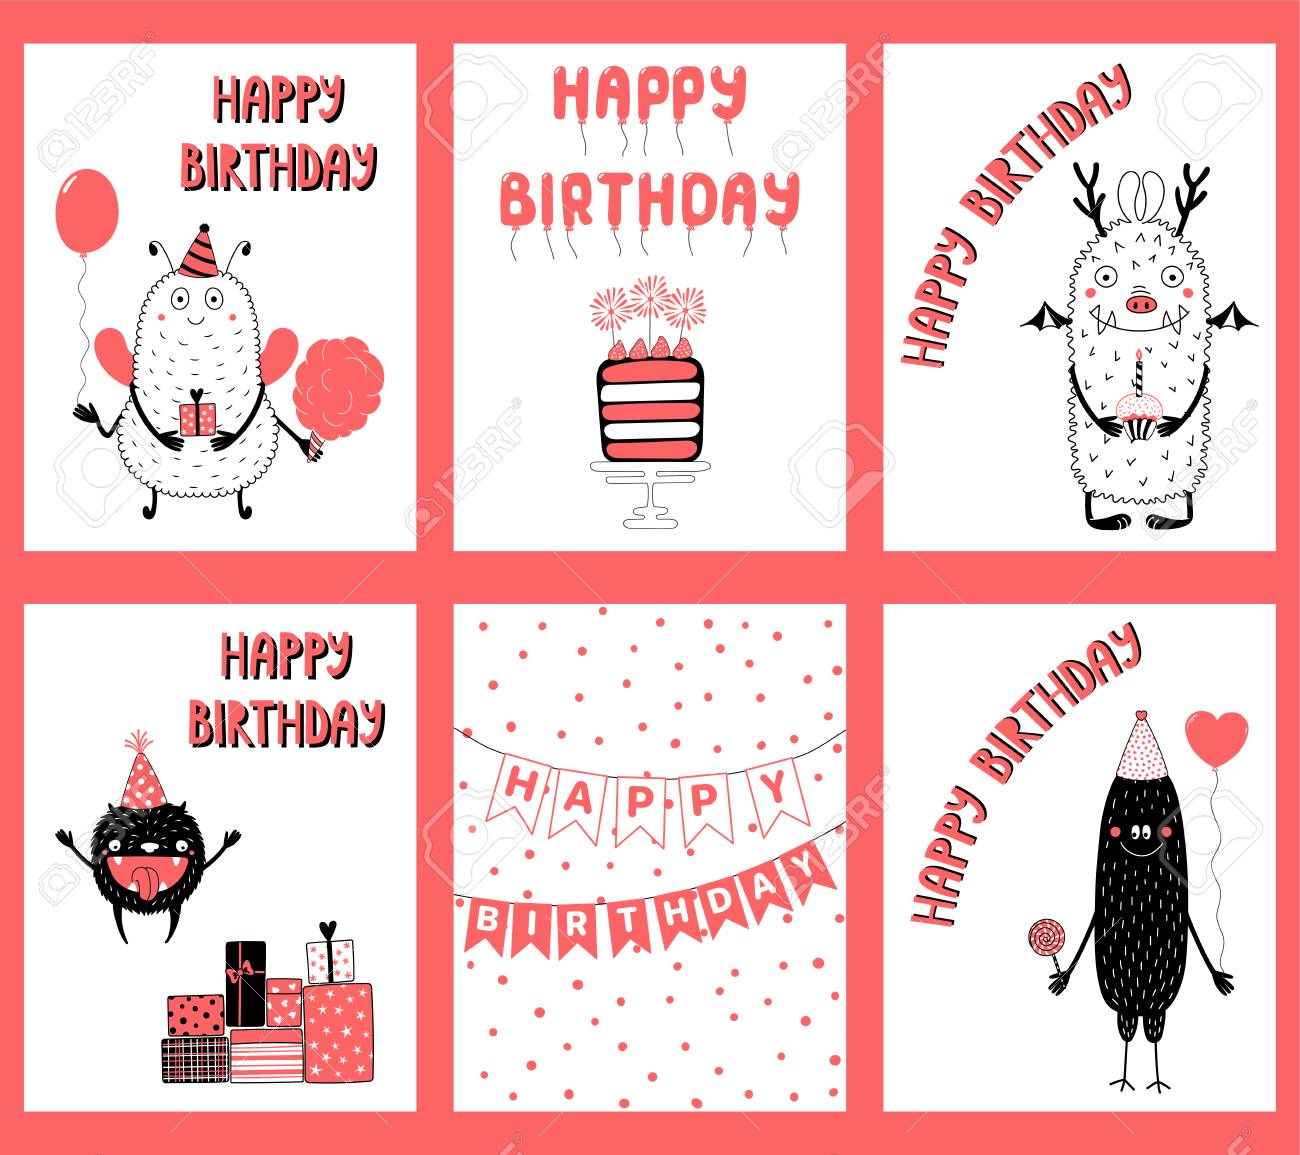 Set Of Hand Drawn Birthday Cards Gift Tags Templates With Cute Funny Cartoon Monsters In